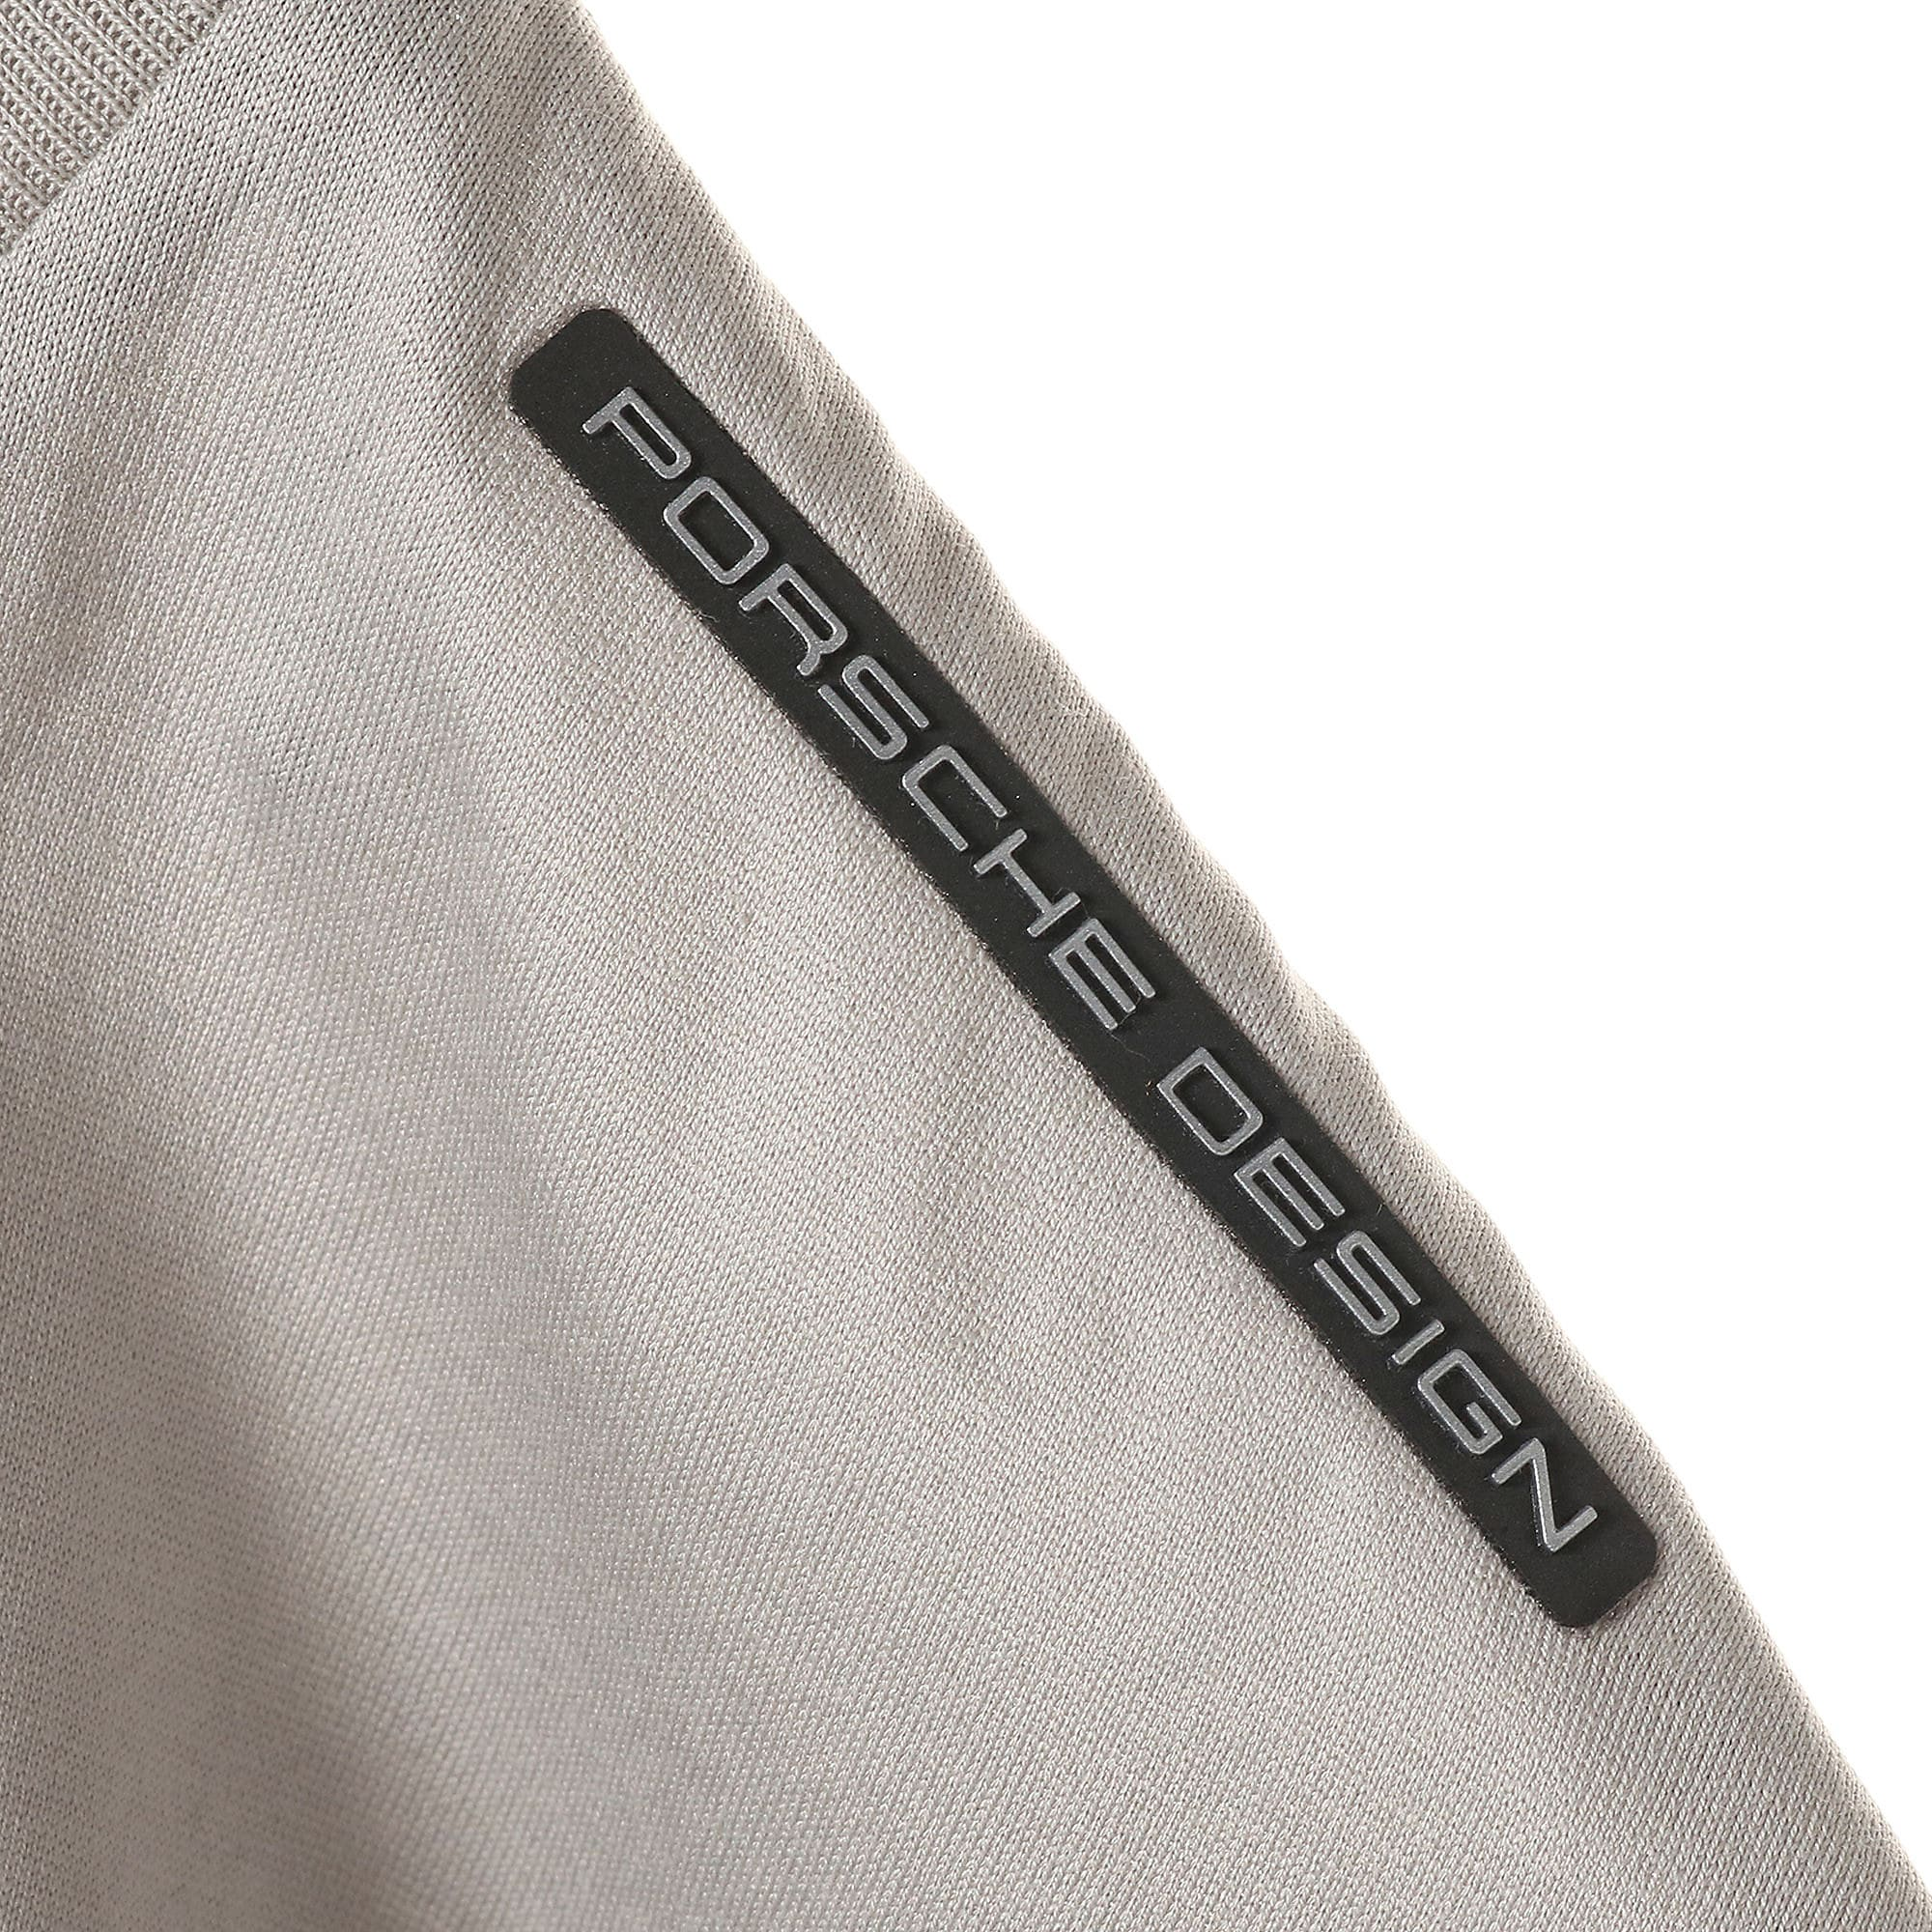 Thumbnail 7 of PORSCHE DESIGN  ライフ Tシャツ, Limestone, medium-JPN